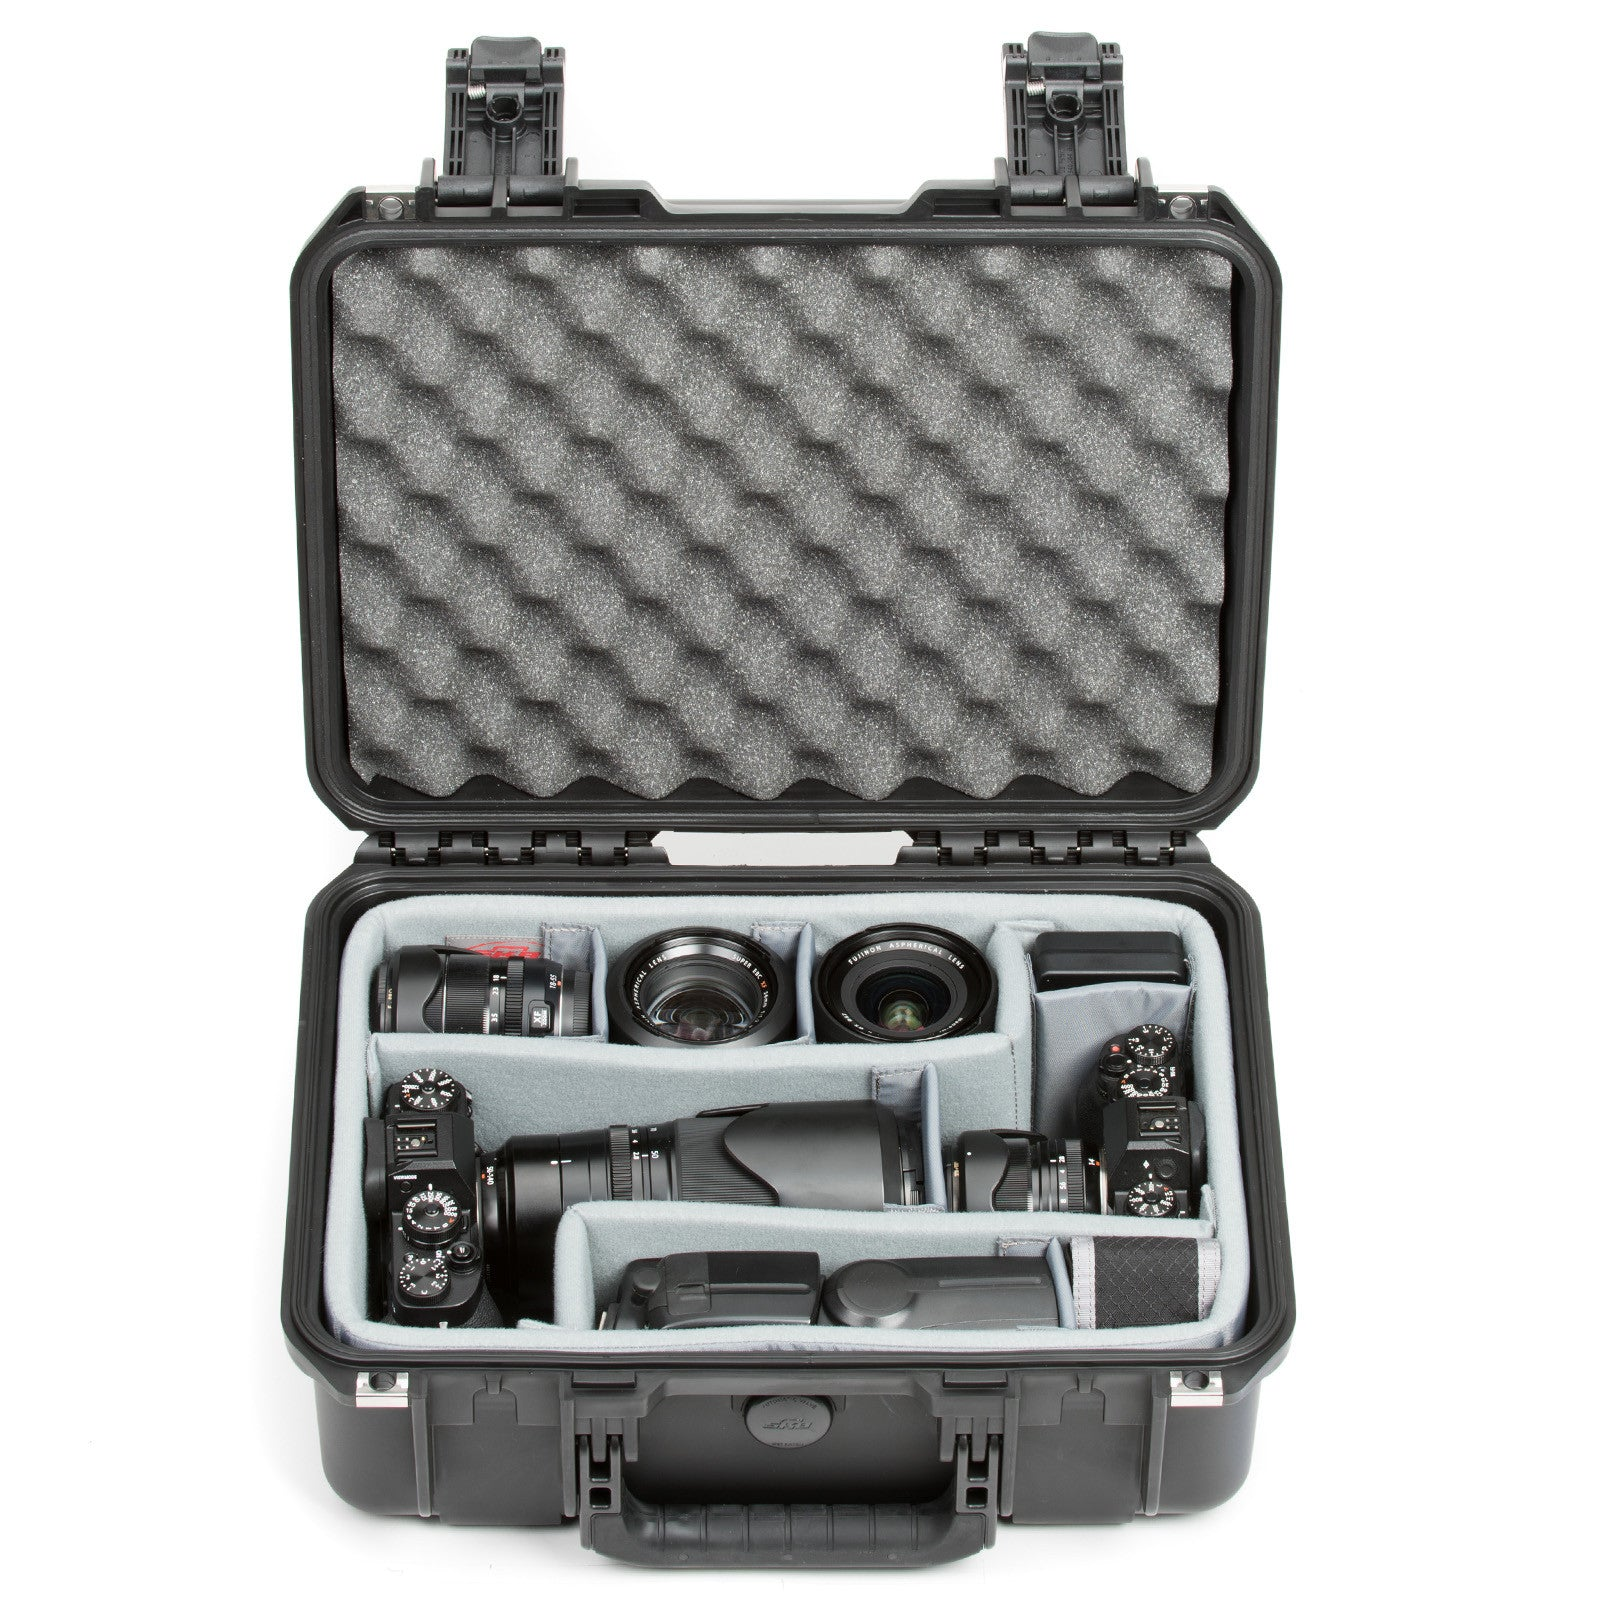 SKB iSeries 3i-1510-6DT Case